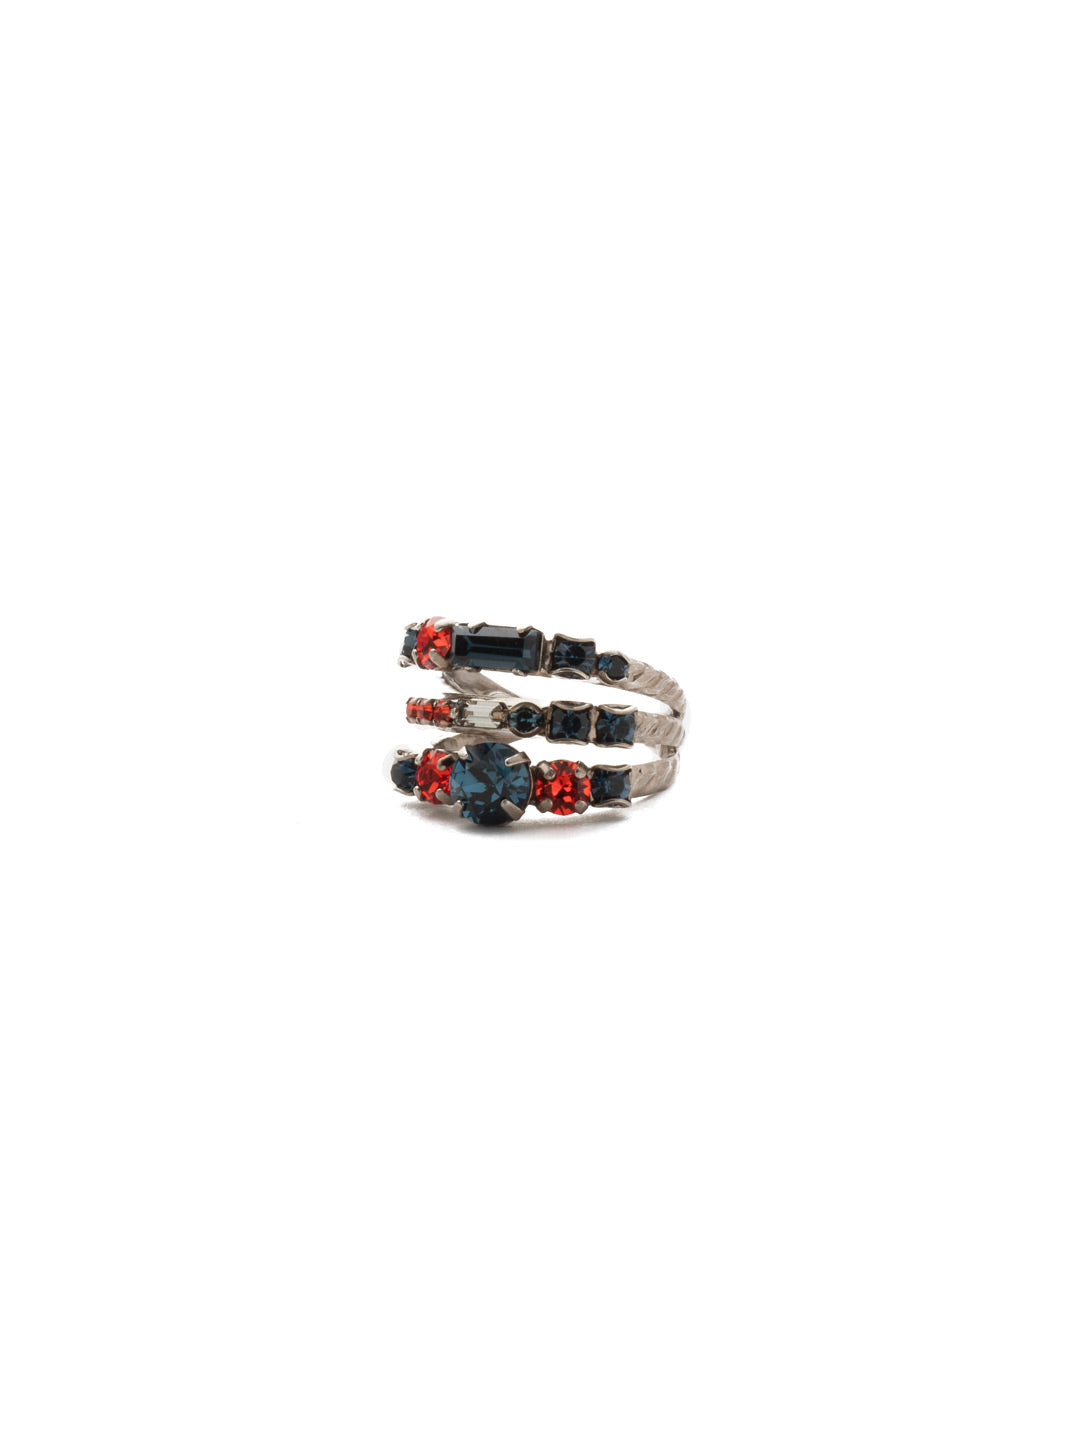 Triple Threat Stacked Ring - RDK23ASBTB